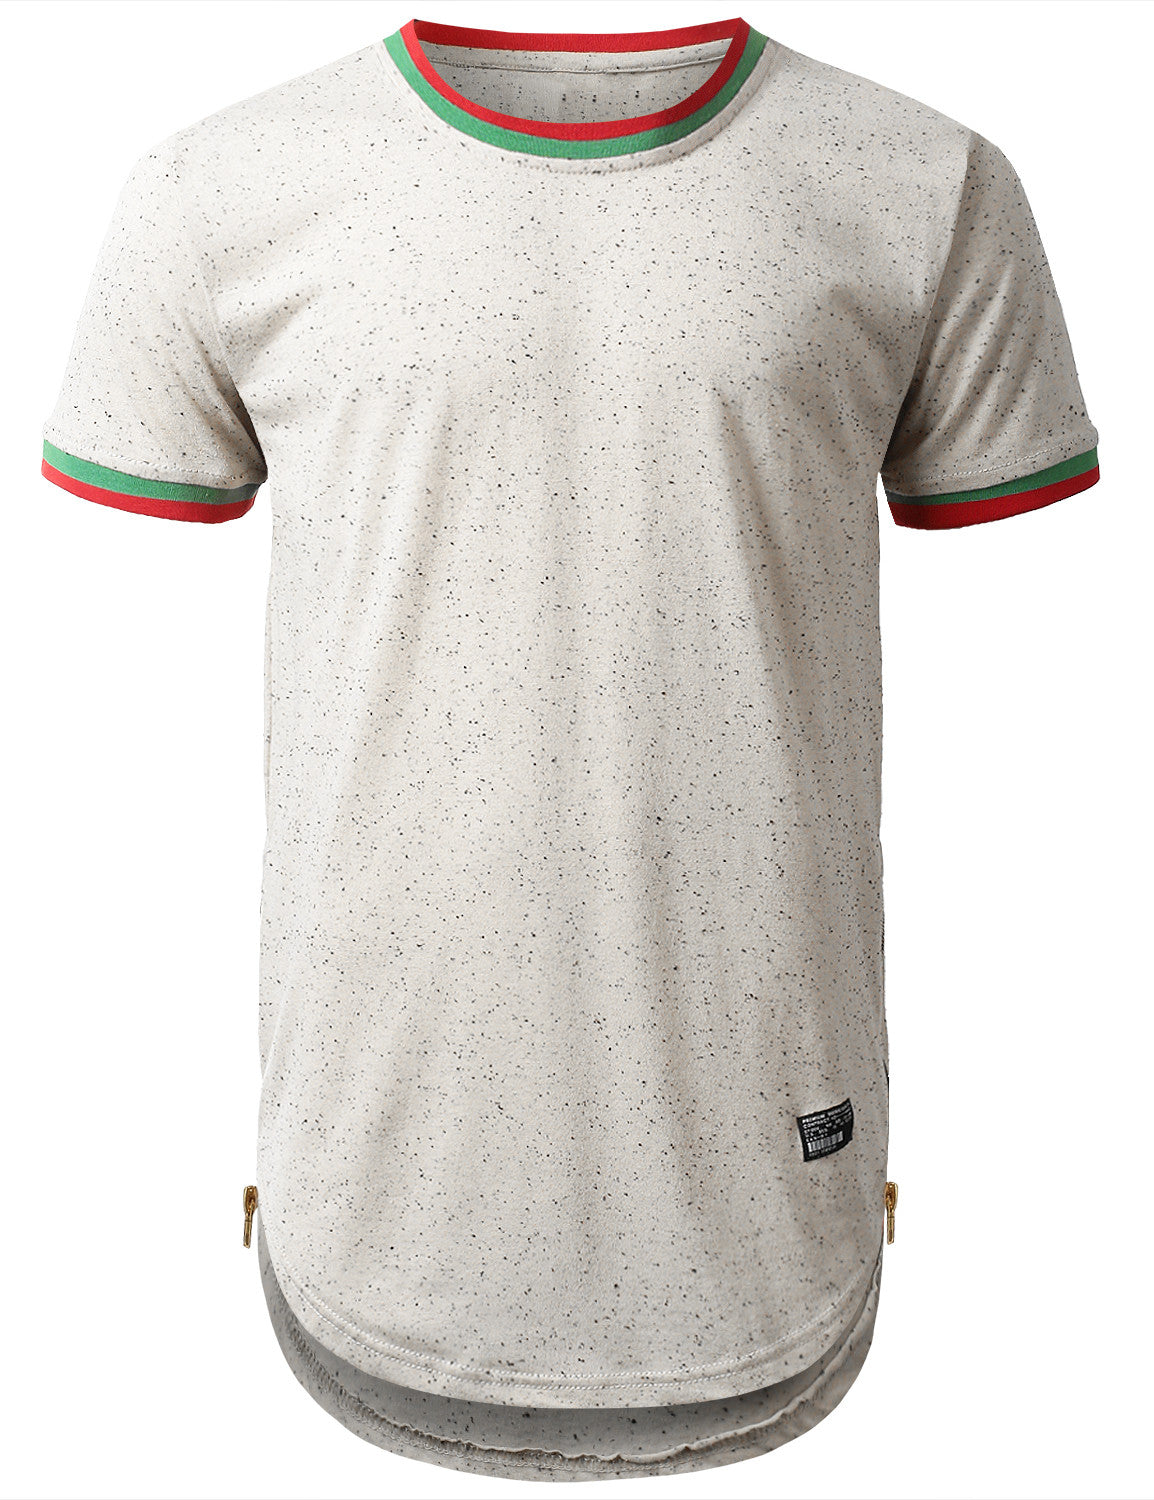 WHITE Nap Yarn Ringer Longline T-shirt - URBANCREWS